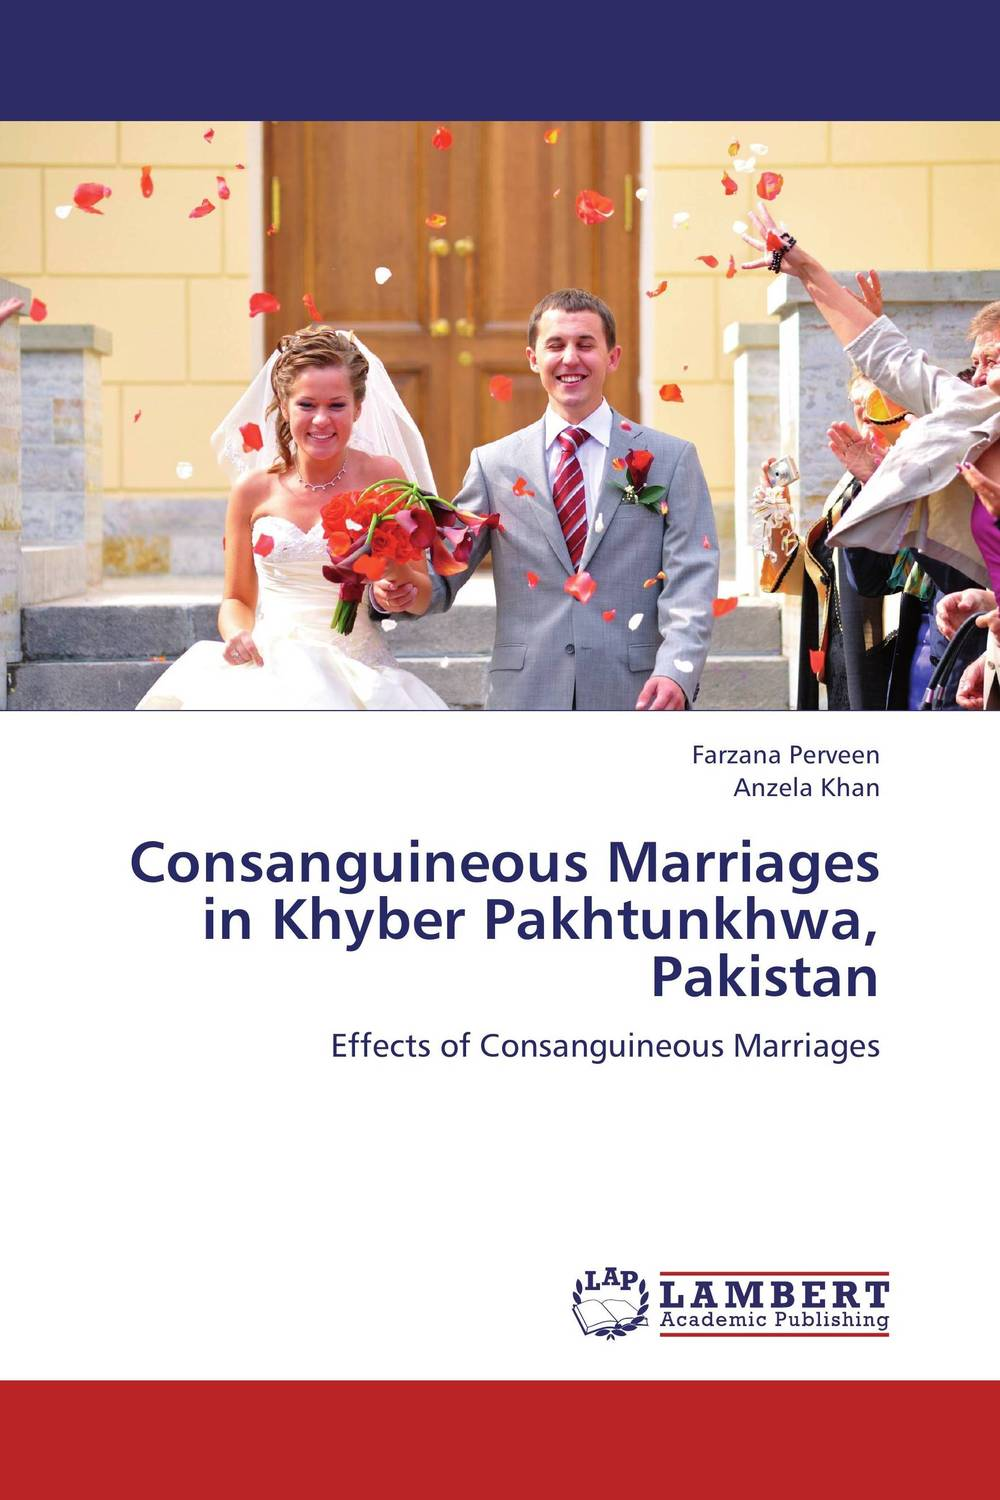 Consanguineous Marriages in Khyber Pakhtunkhwa, Pakistan rare genetic disorders in iraq